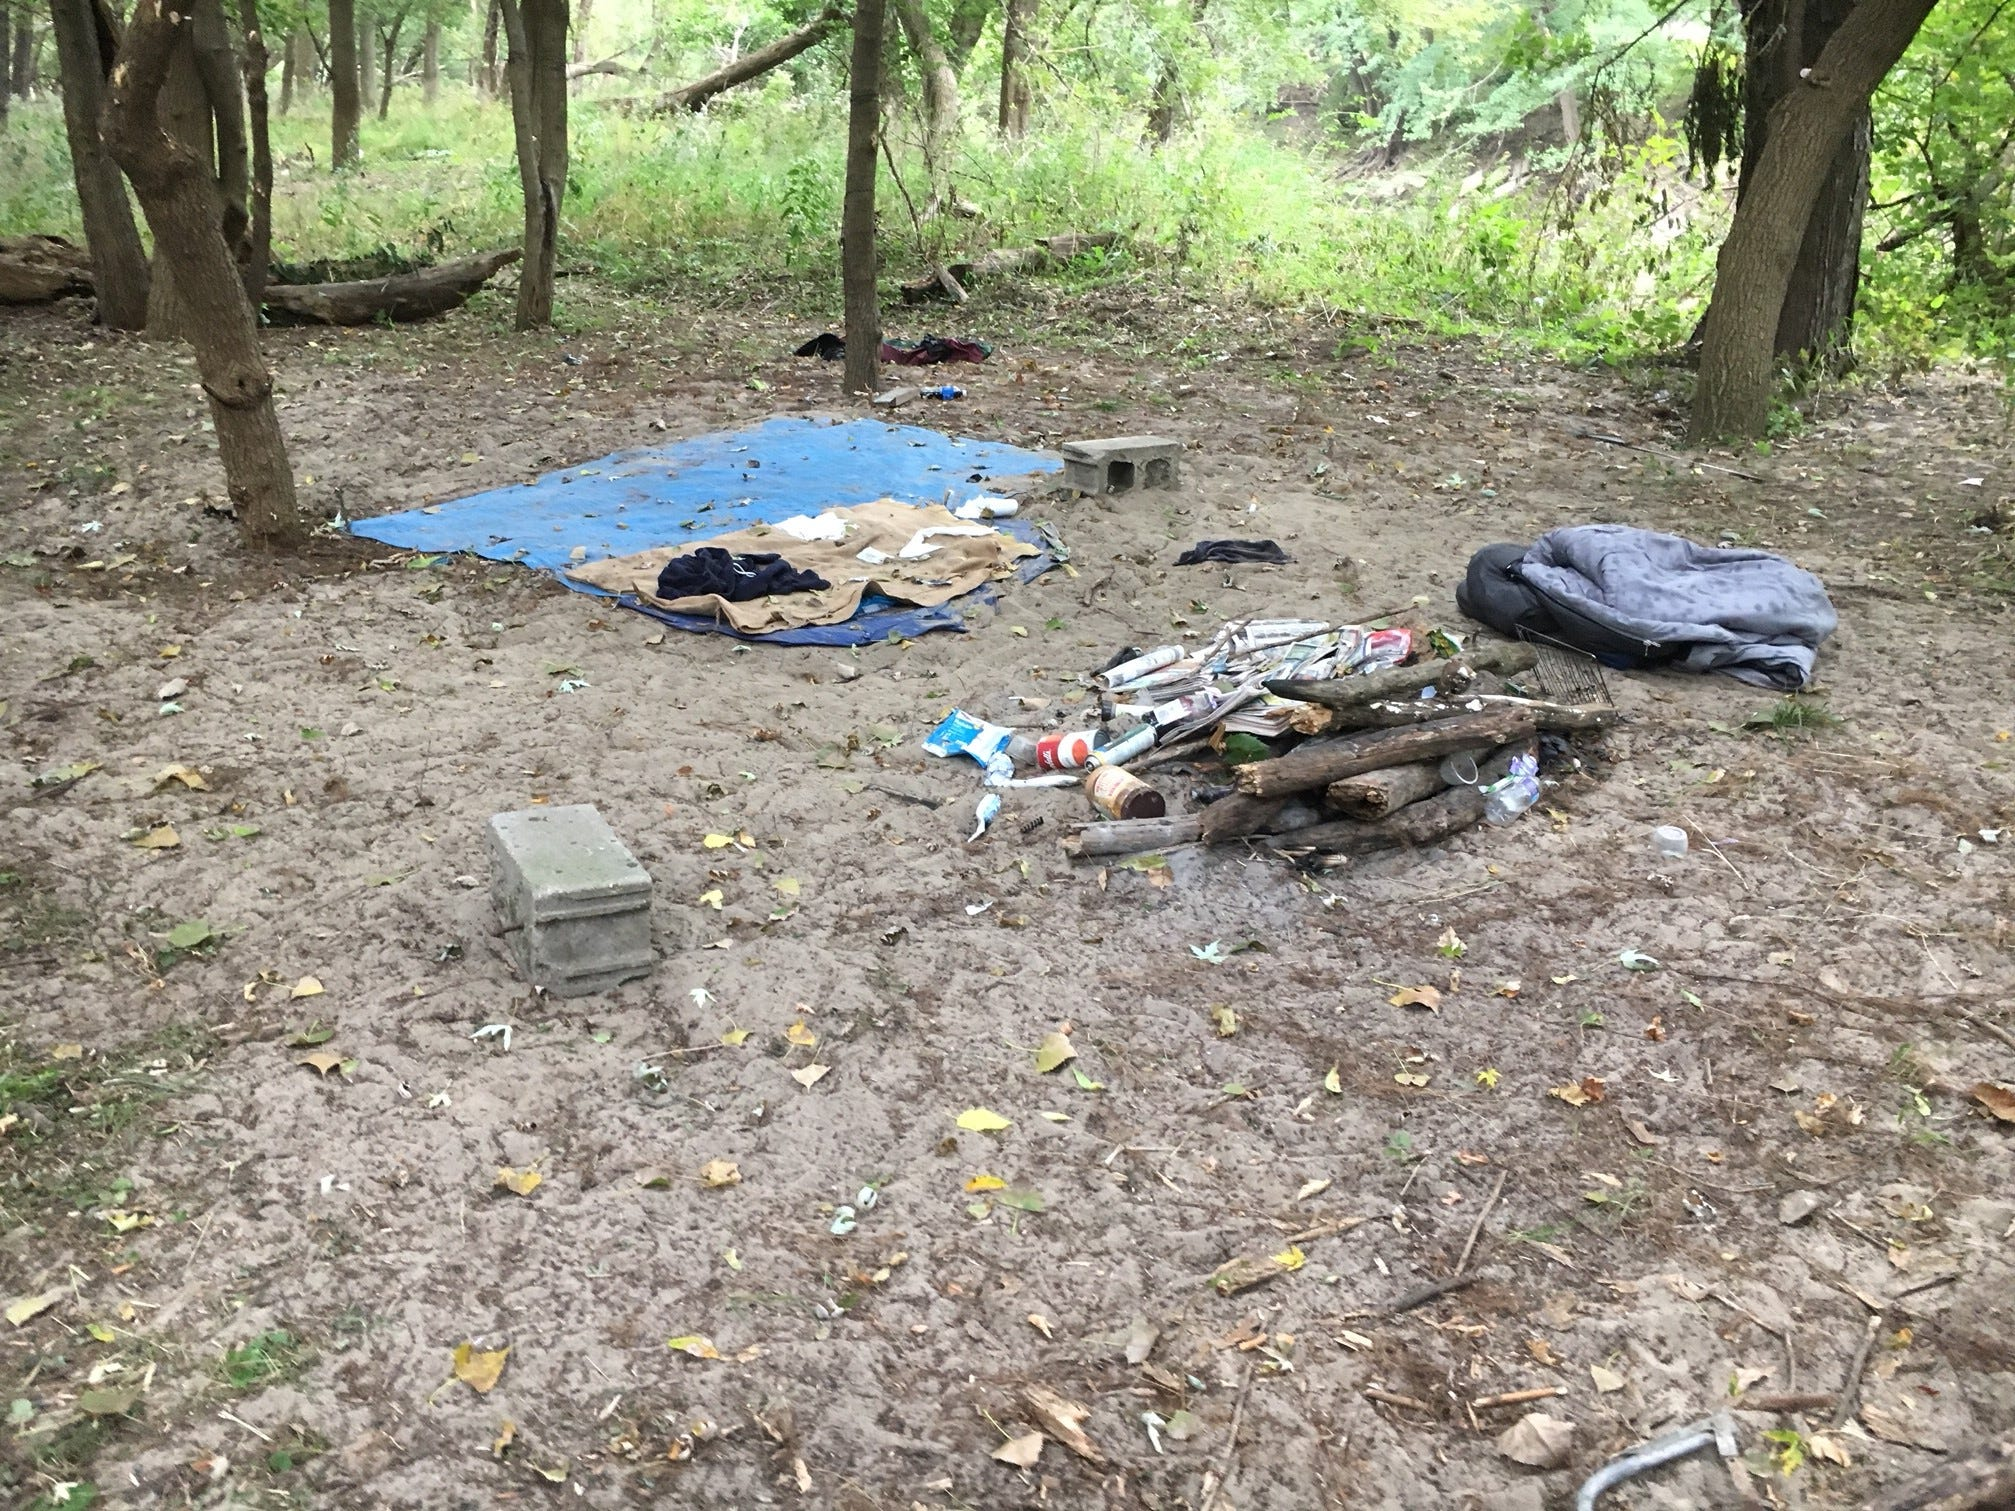 Celia Barquin killing: Murder suspect's homeless camp riddled with garbage and questions